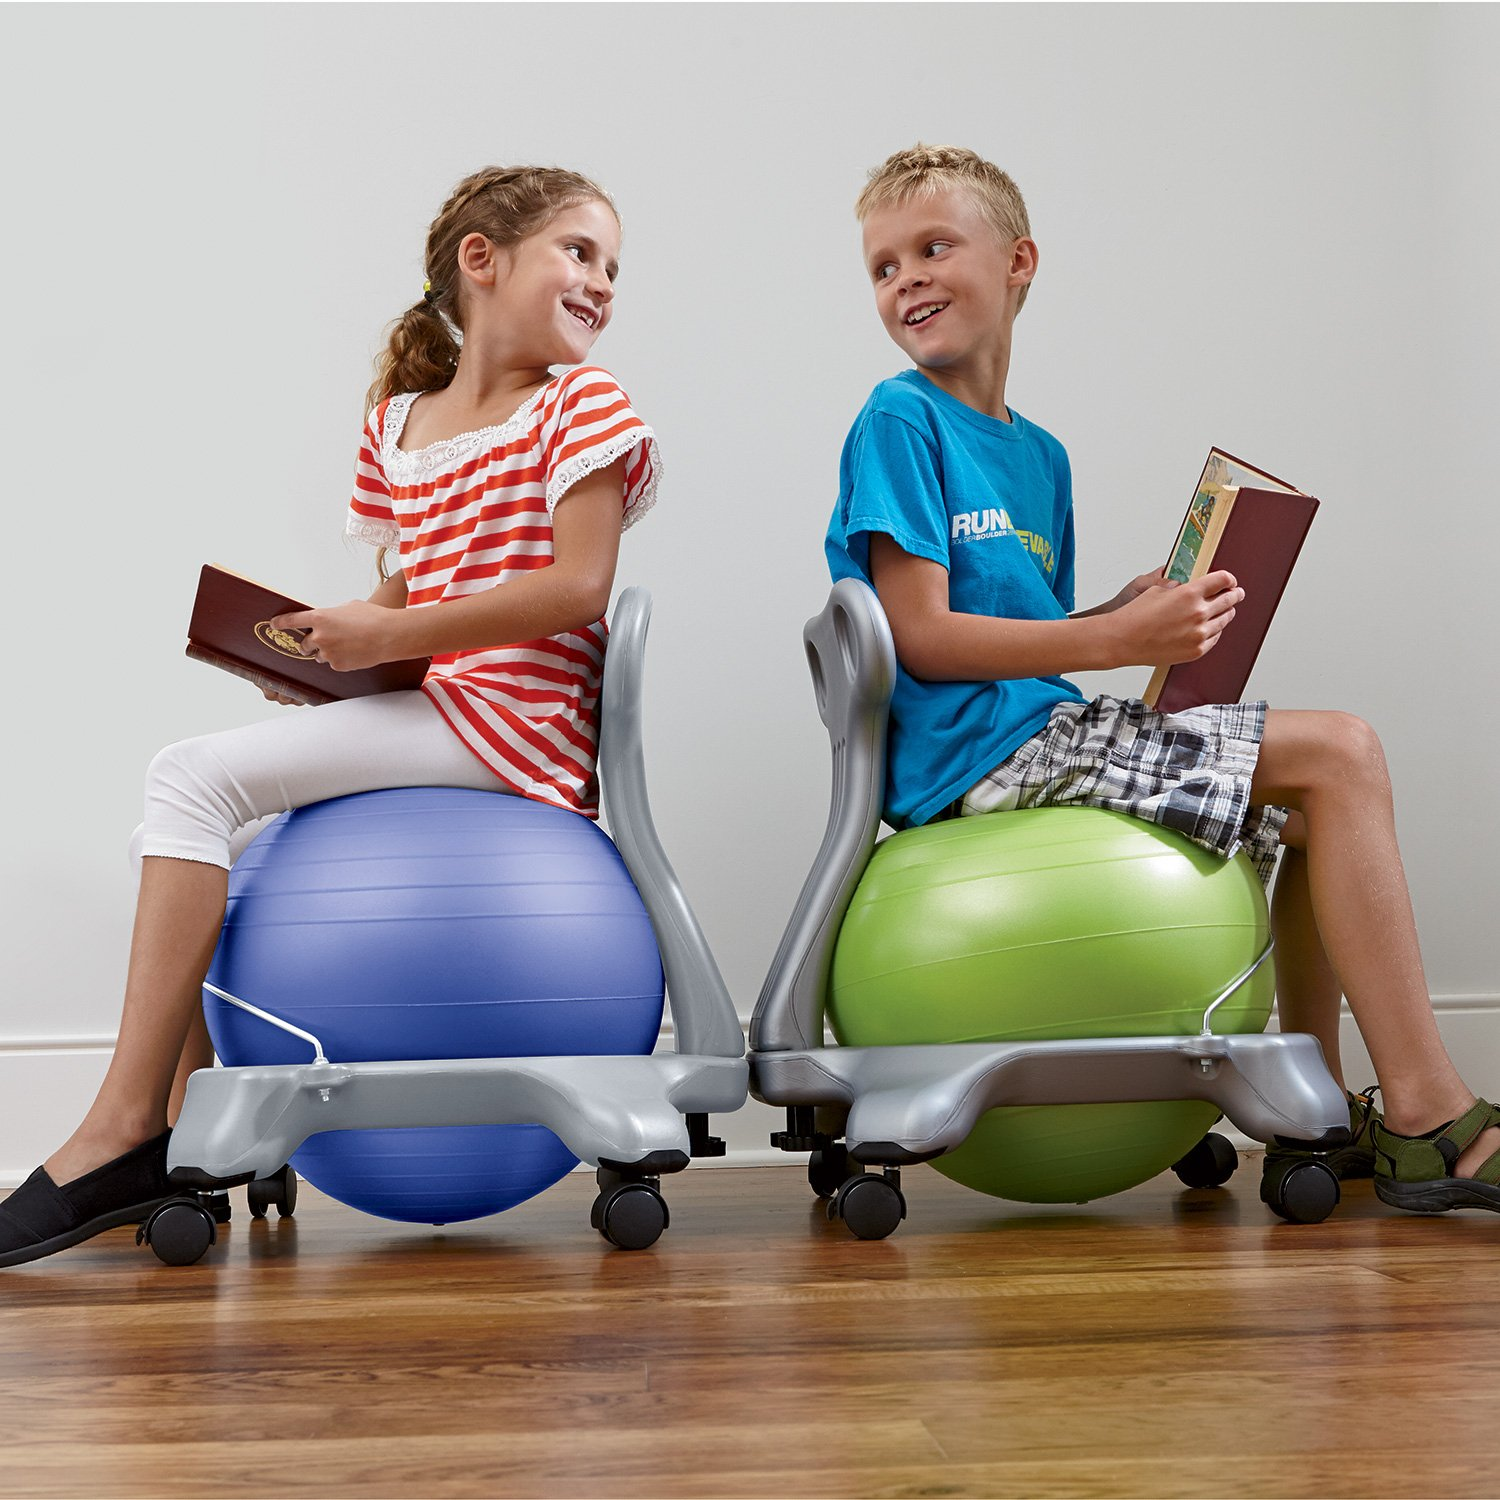 Gaiam Kids Balance Ball Chair - Classic Children's Stability Ball Chair, Alternative School Classroom Flexible Desk Seating for Active Students with Satisfaction Guarantee, Green by Gaiam (Image #7)